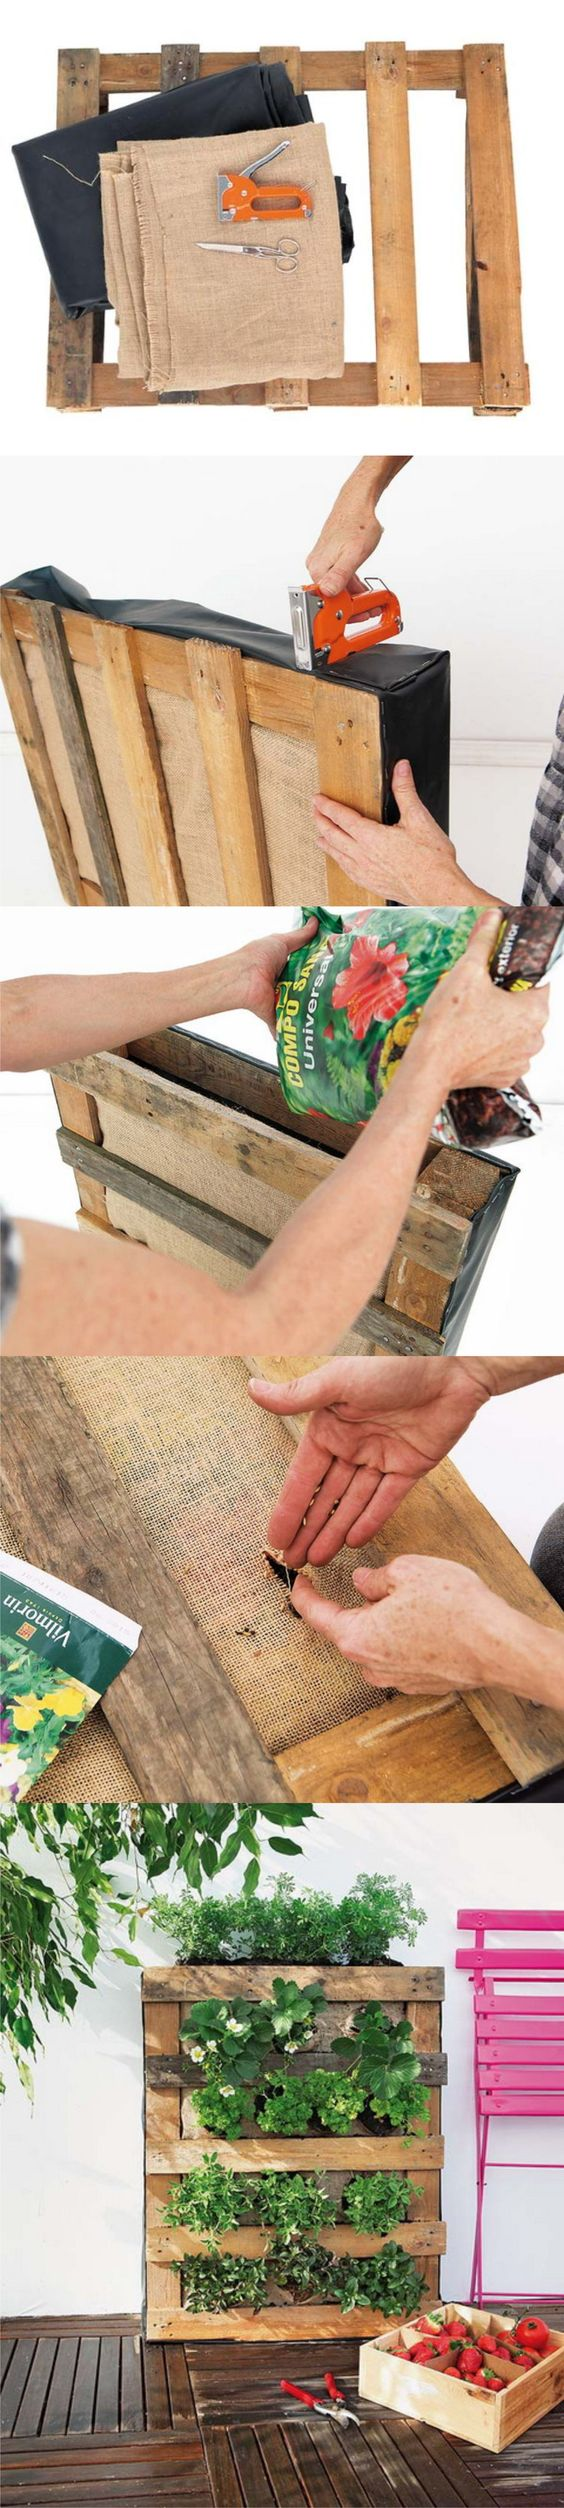 #Pallets: DIY: Garden enthusiasts - http://dunway.info/pallets/index.html: